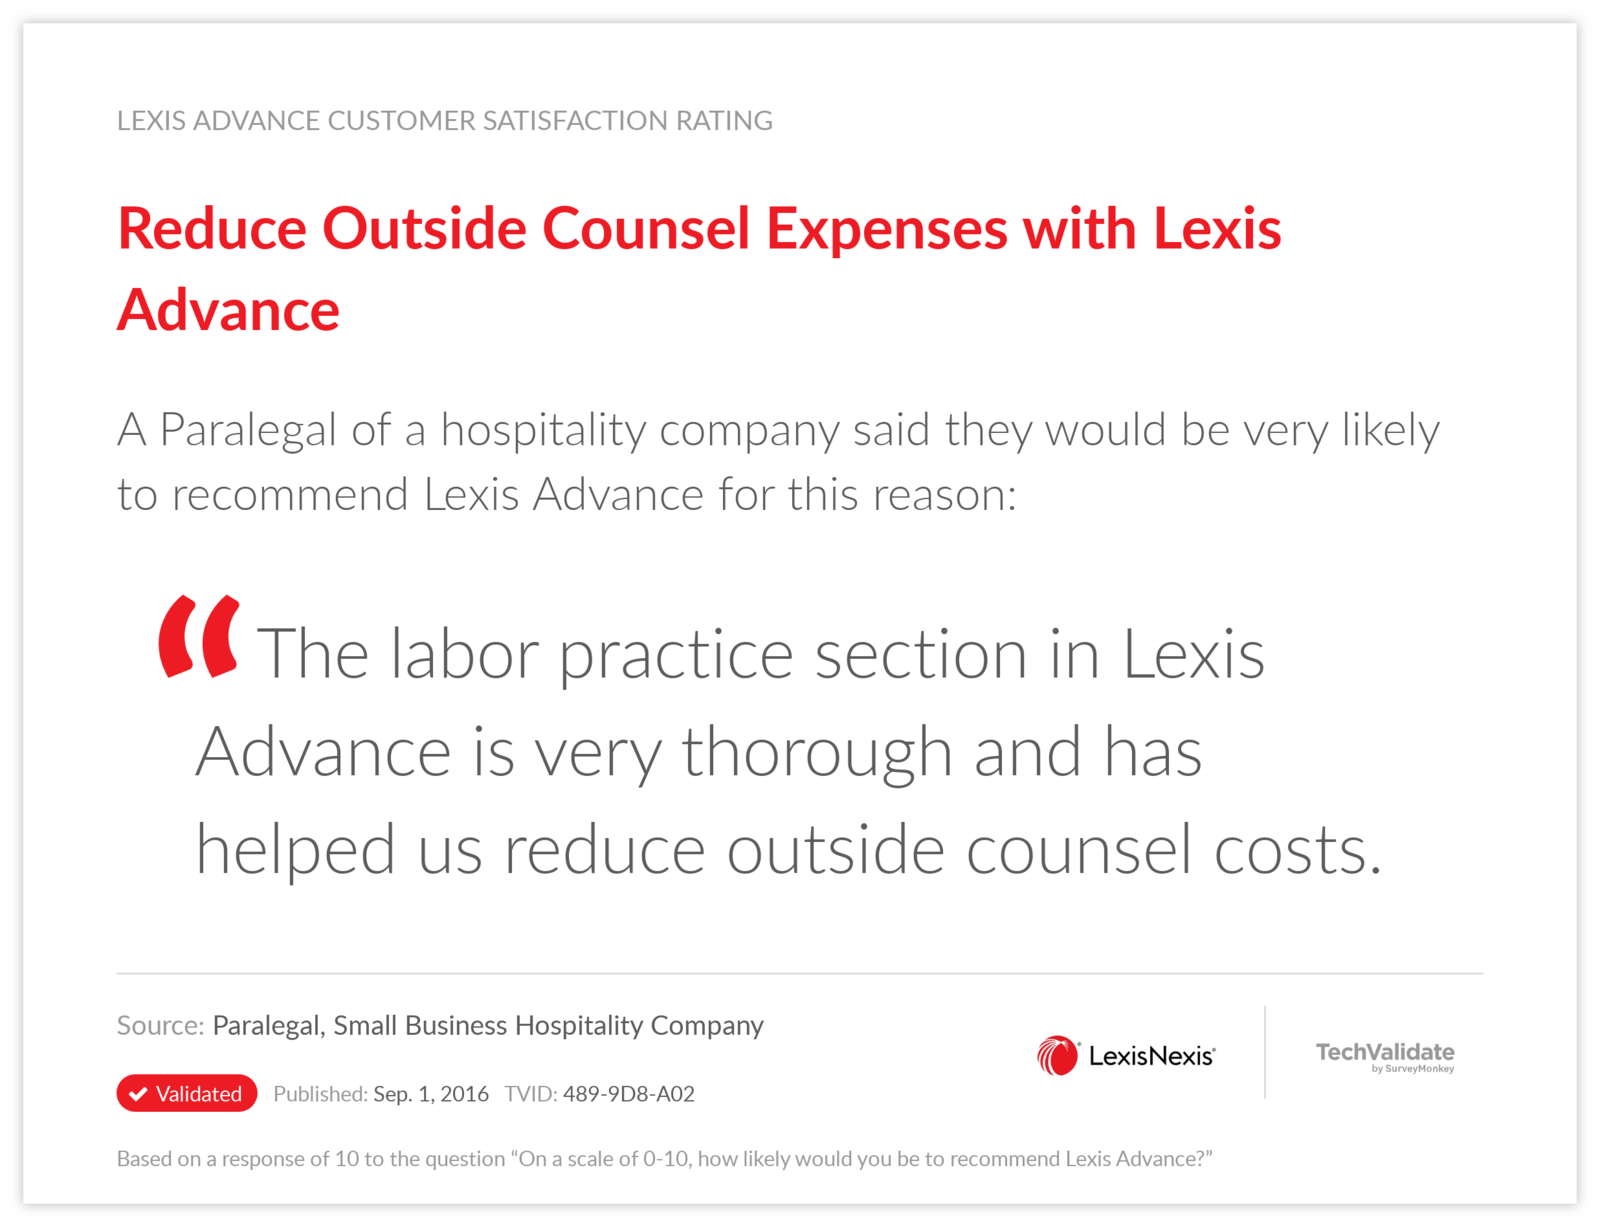 Reduce Outside Counsel Expenses with Lexis Advance